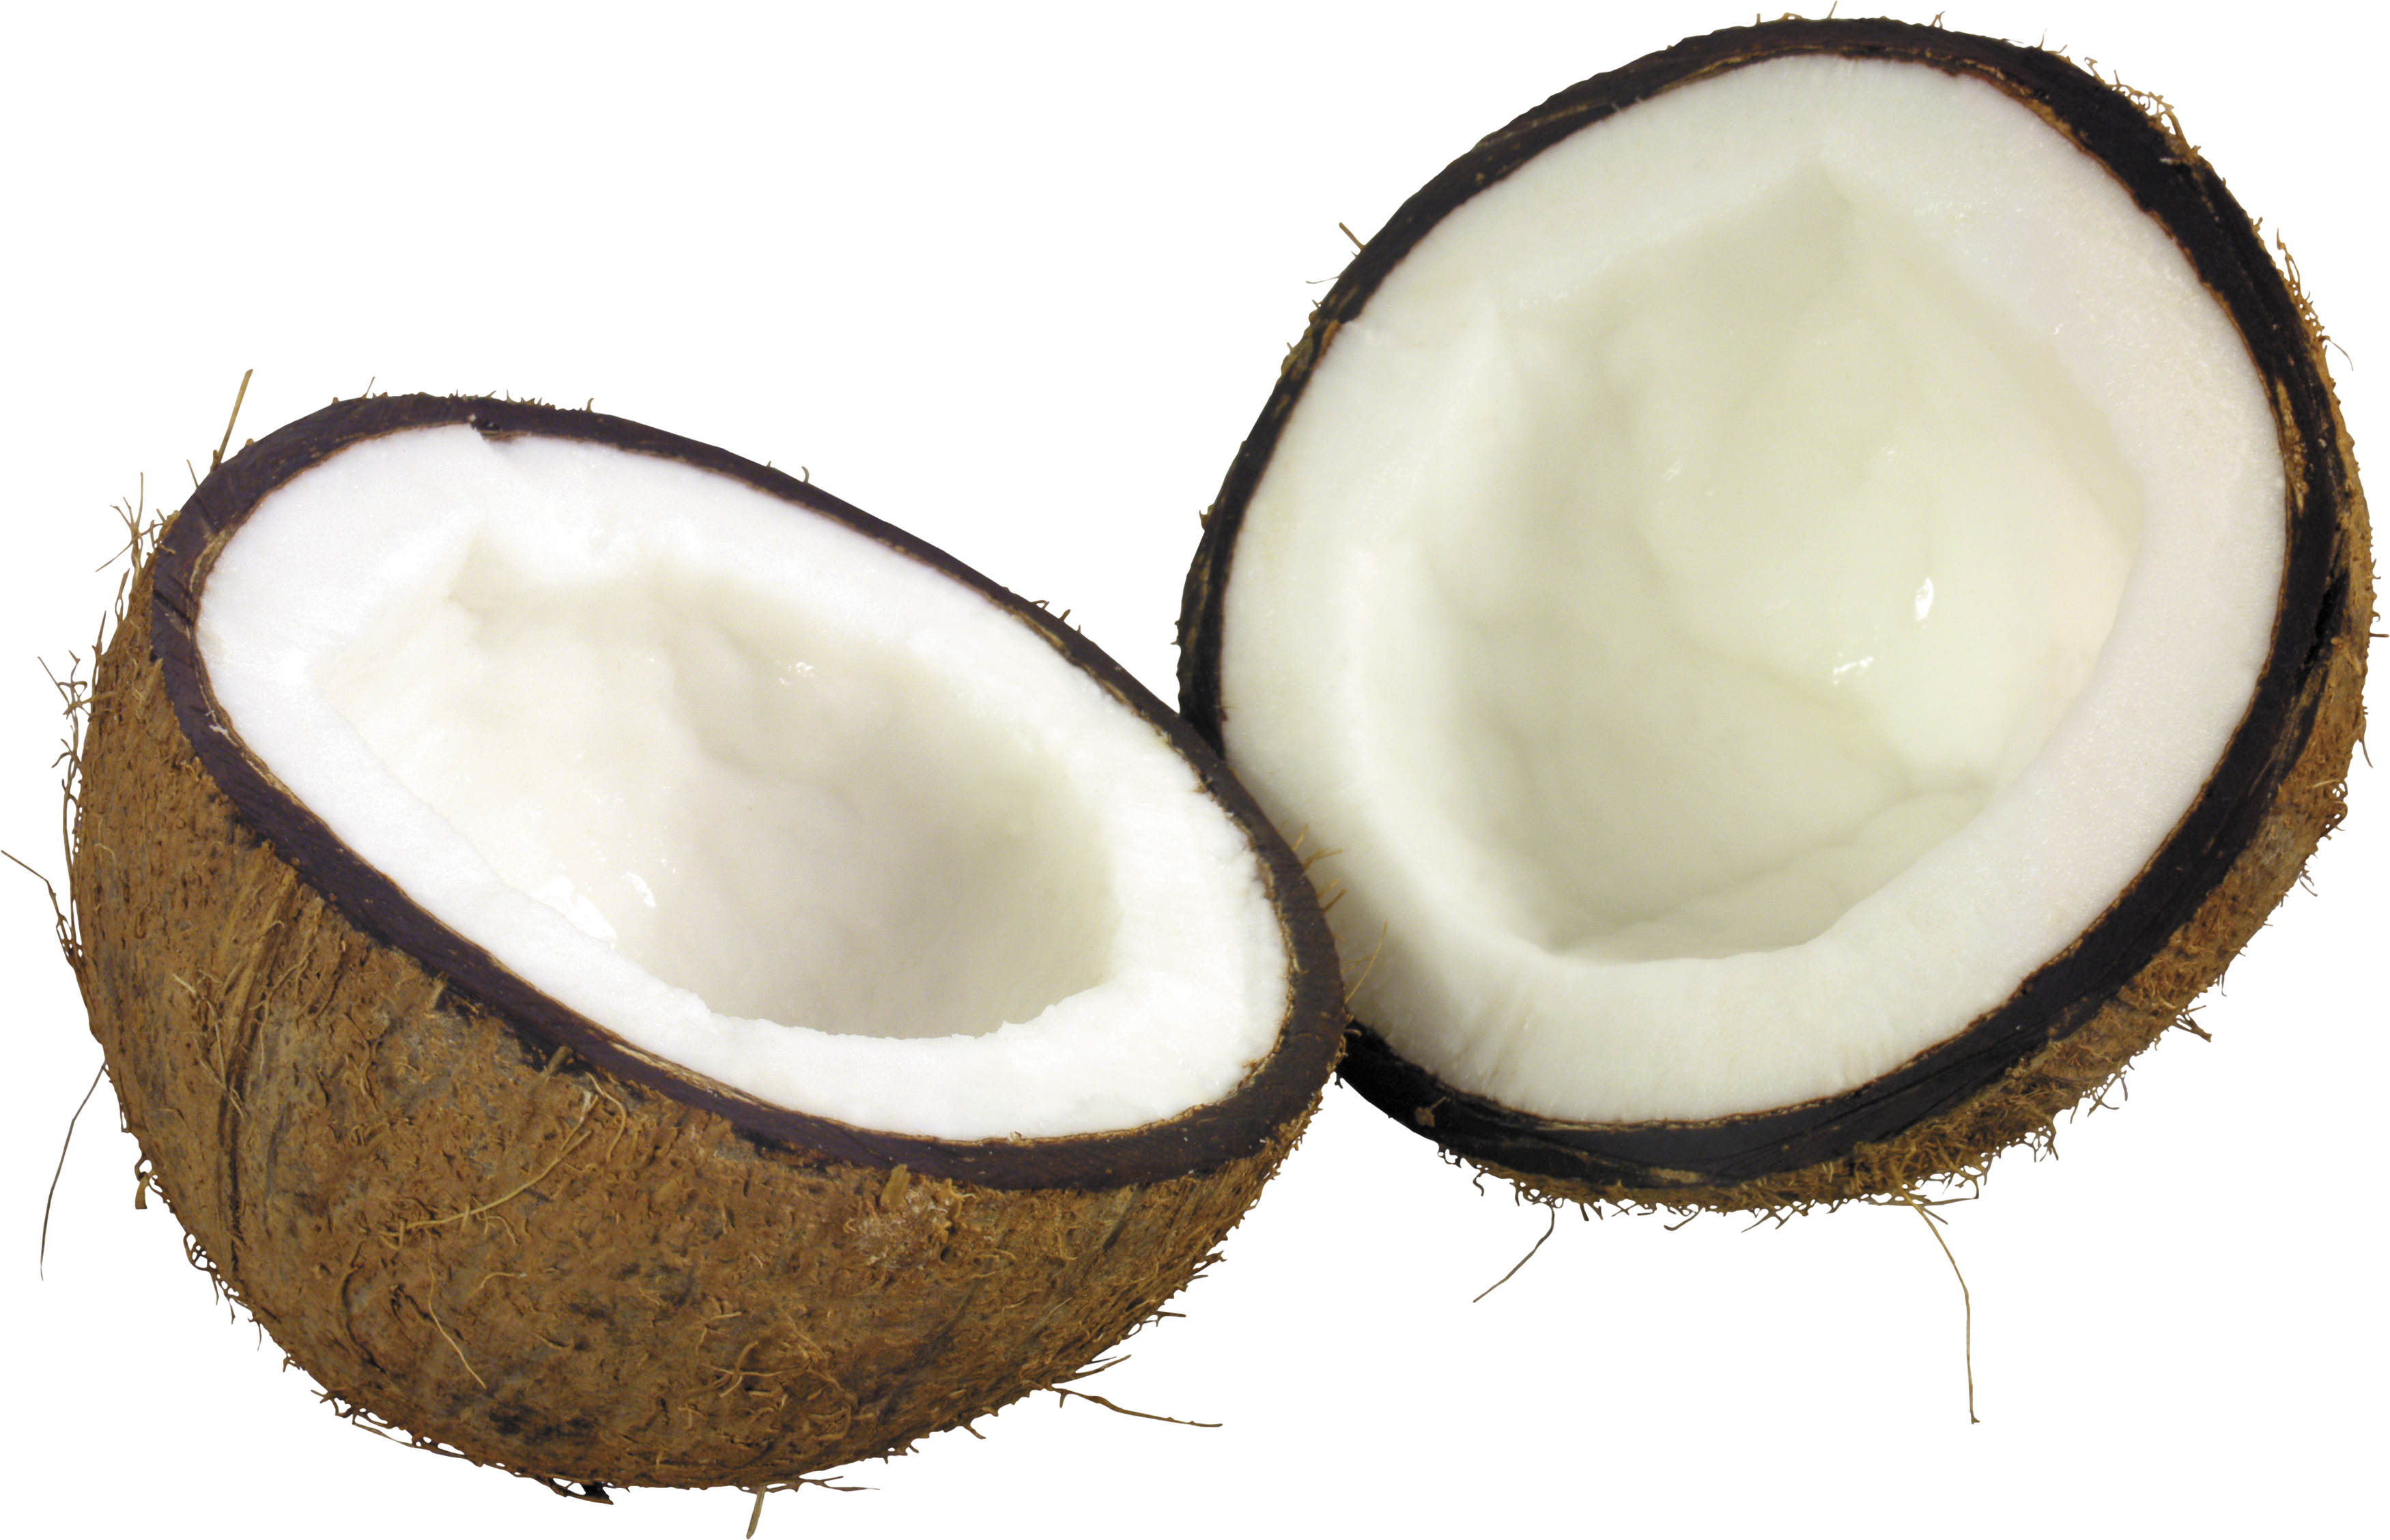 Png image . Coconut clipart clear background